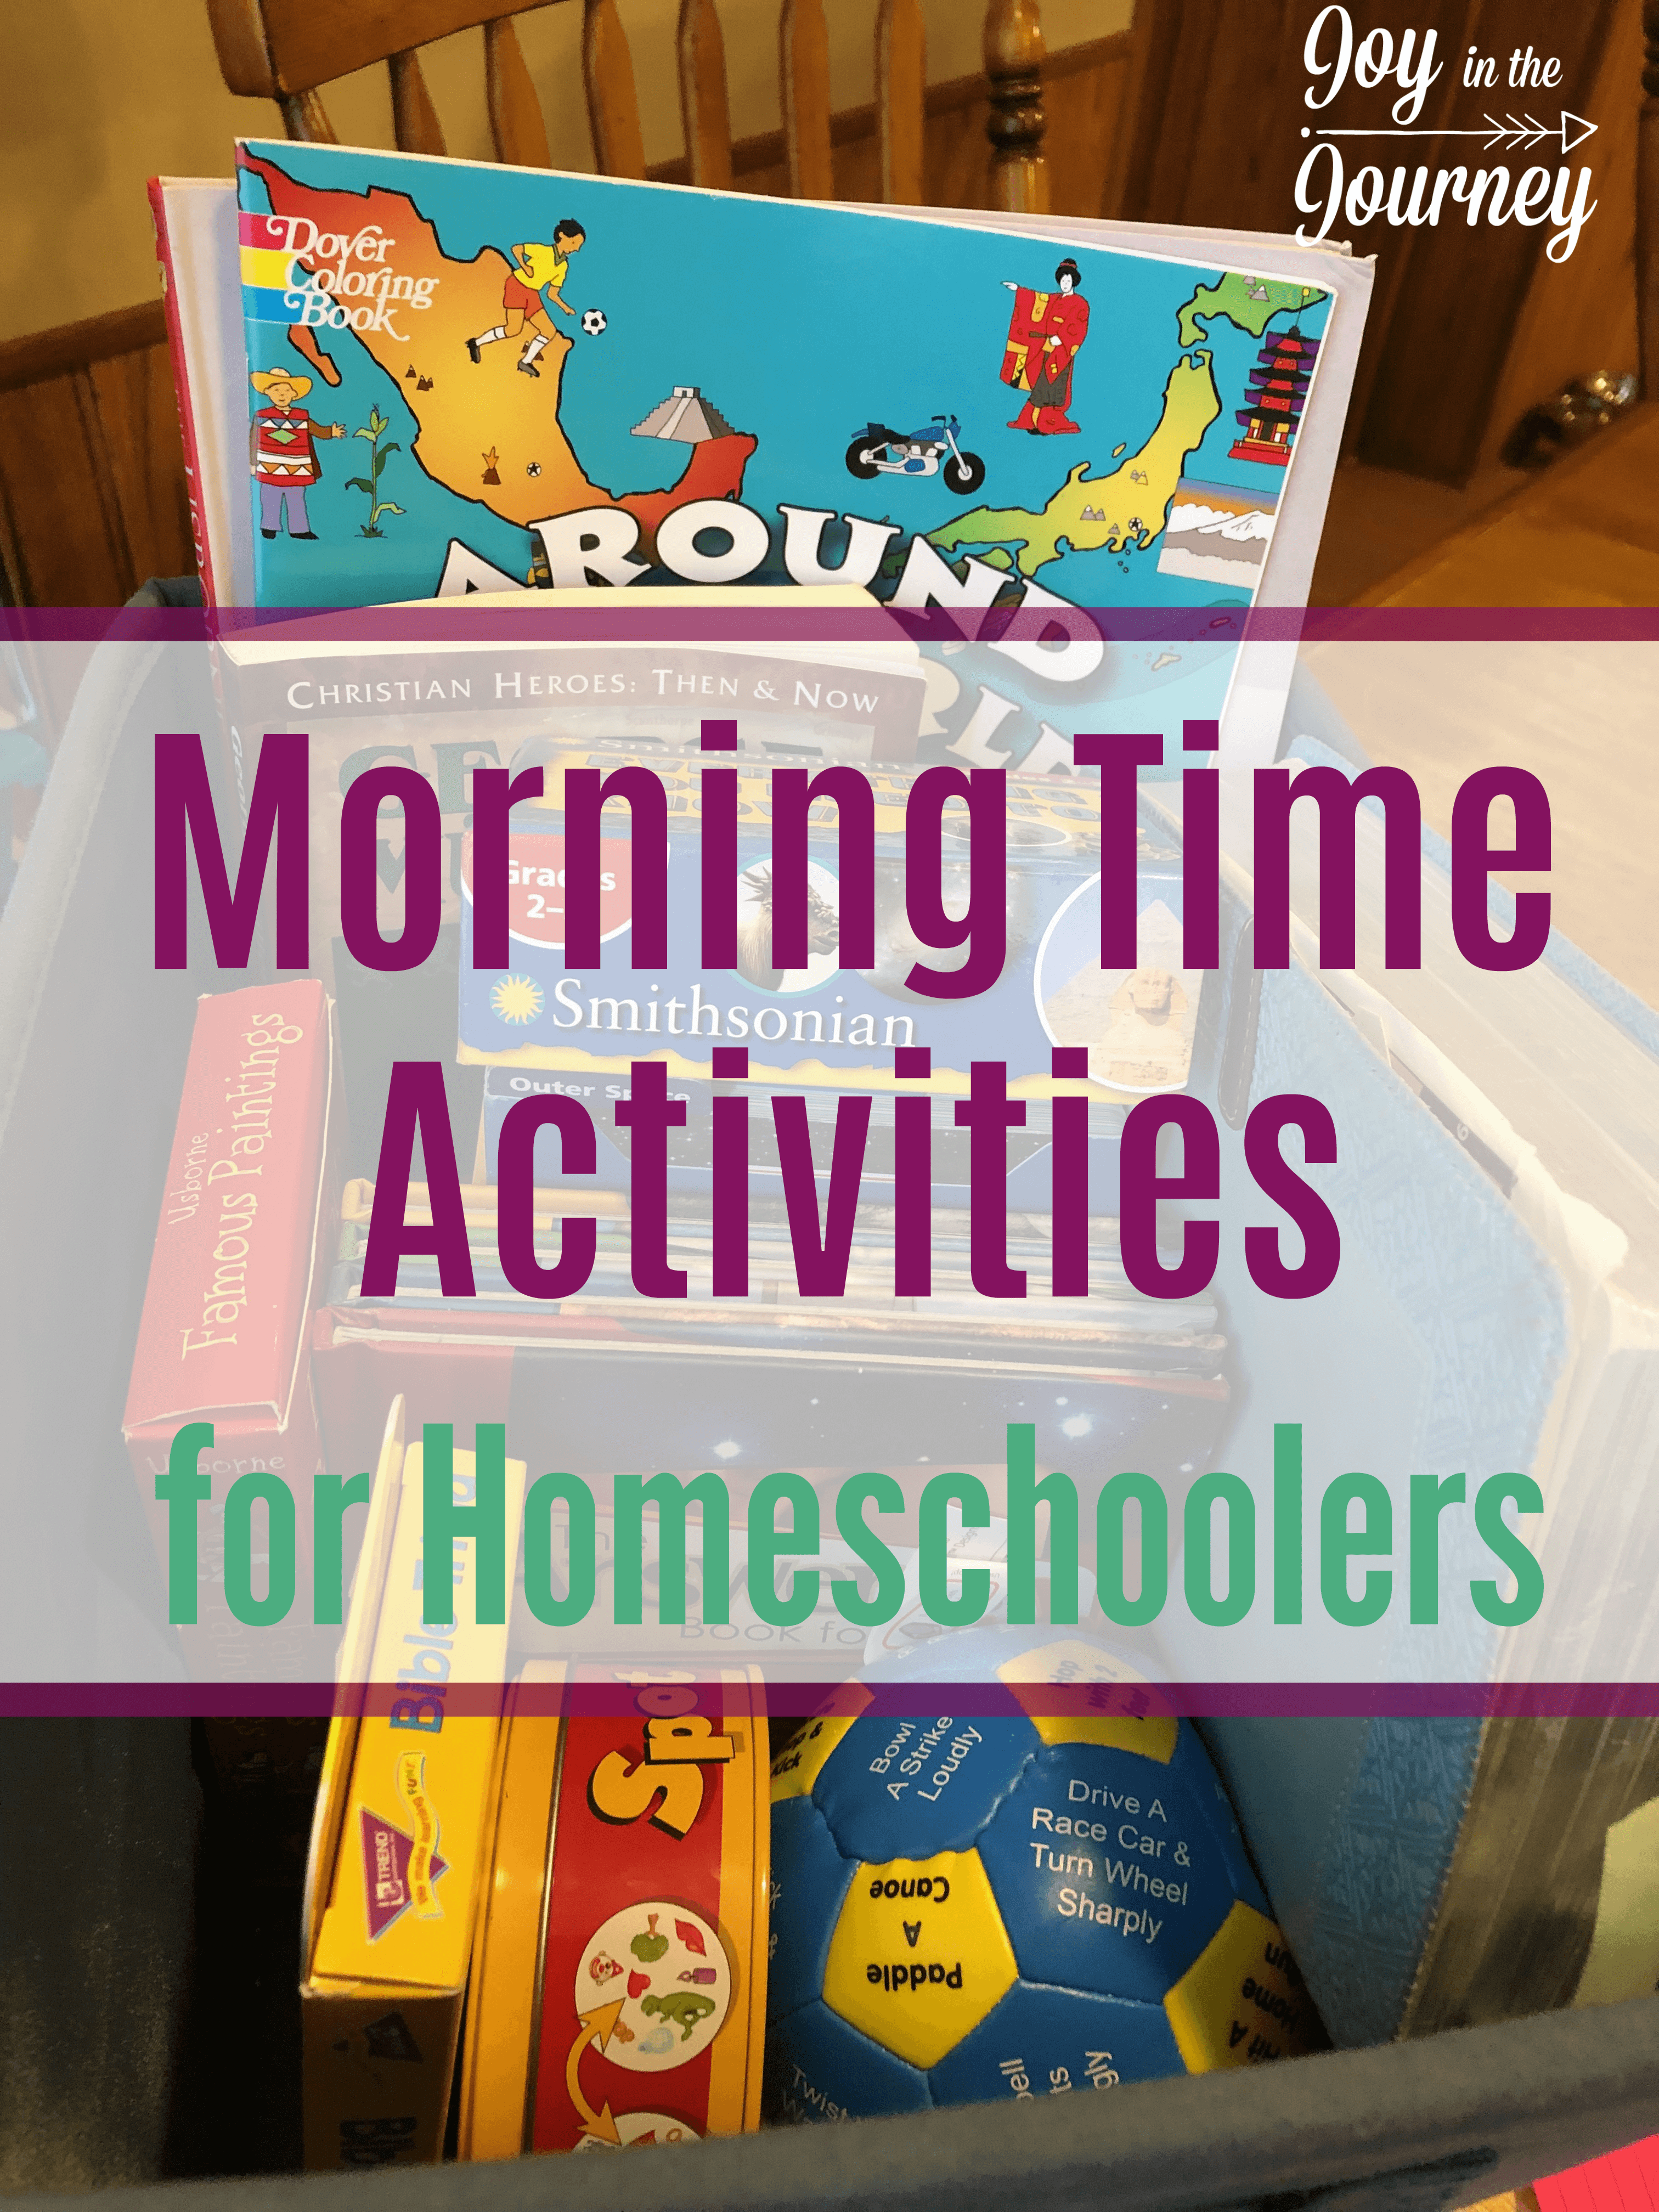 When I taught preschool, Circle Time was an exciting part of the day. Now, I make sure it is part of our homeschool morning time, and you can too with these circle time activities.